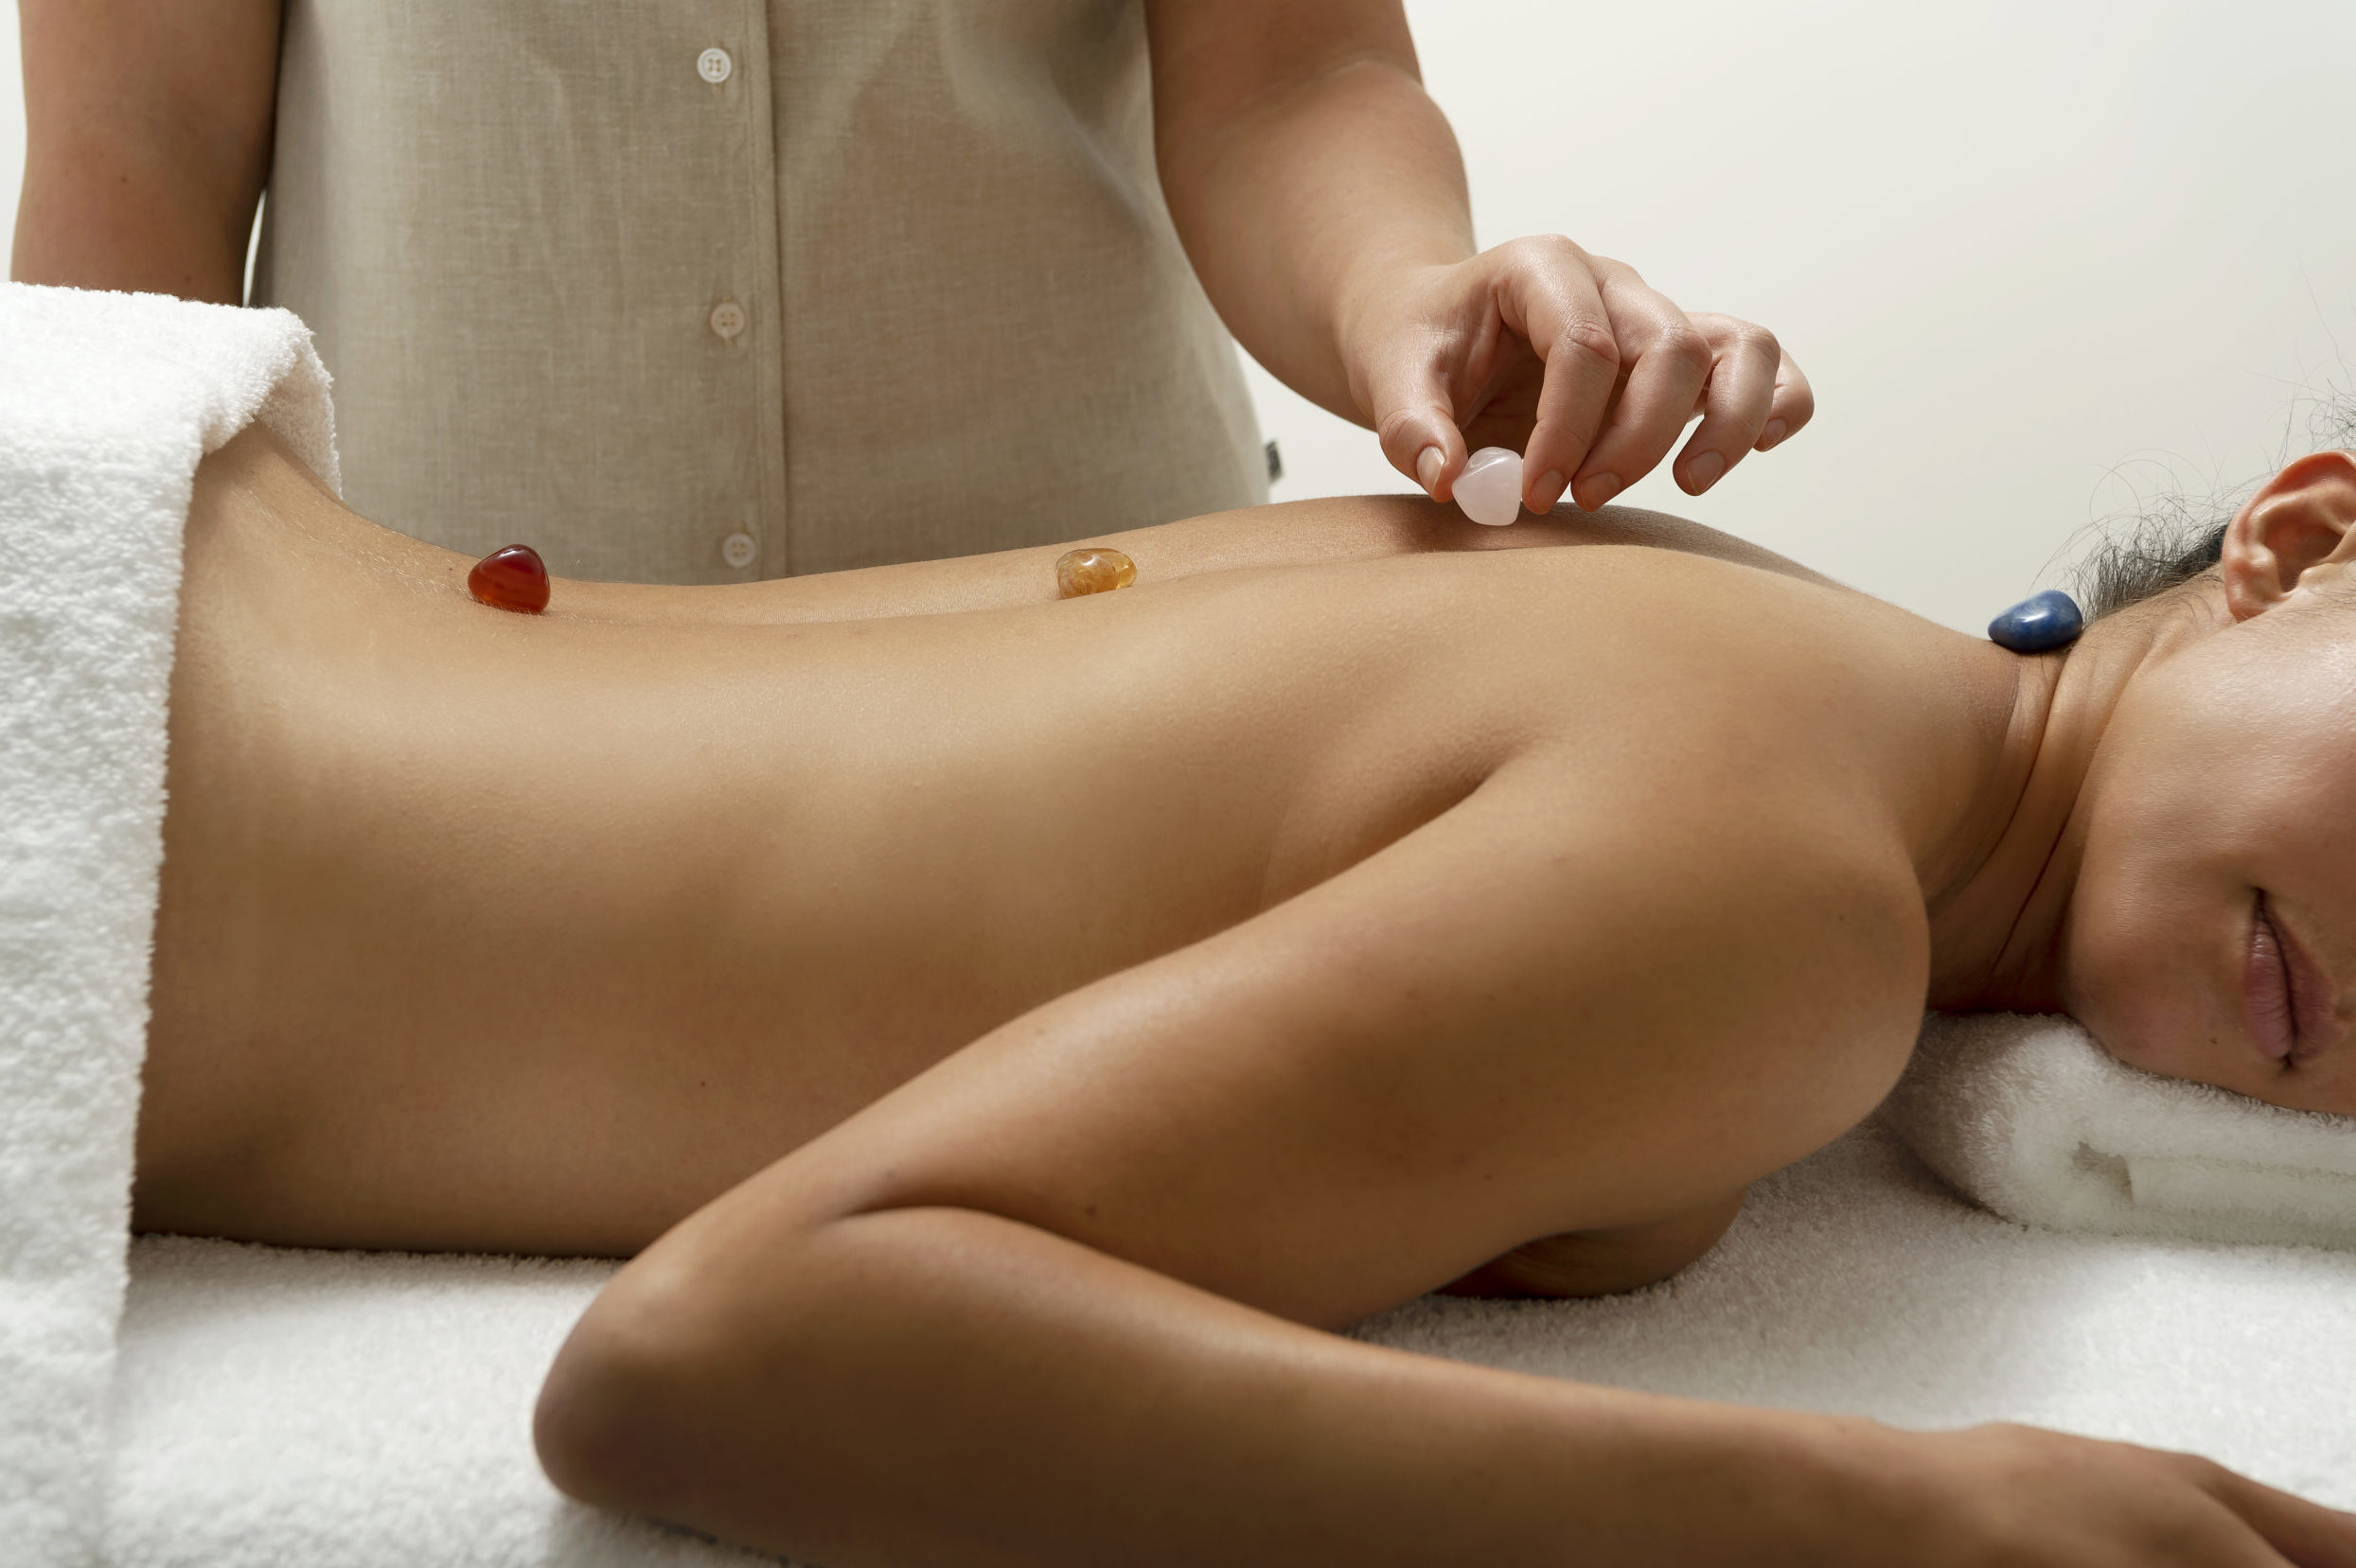 Image of a woman getting small coloured stones placed on her back